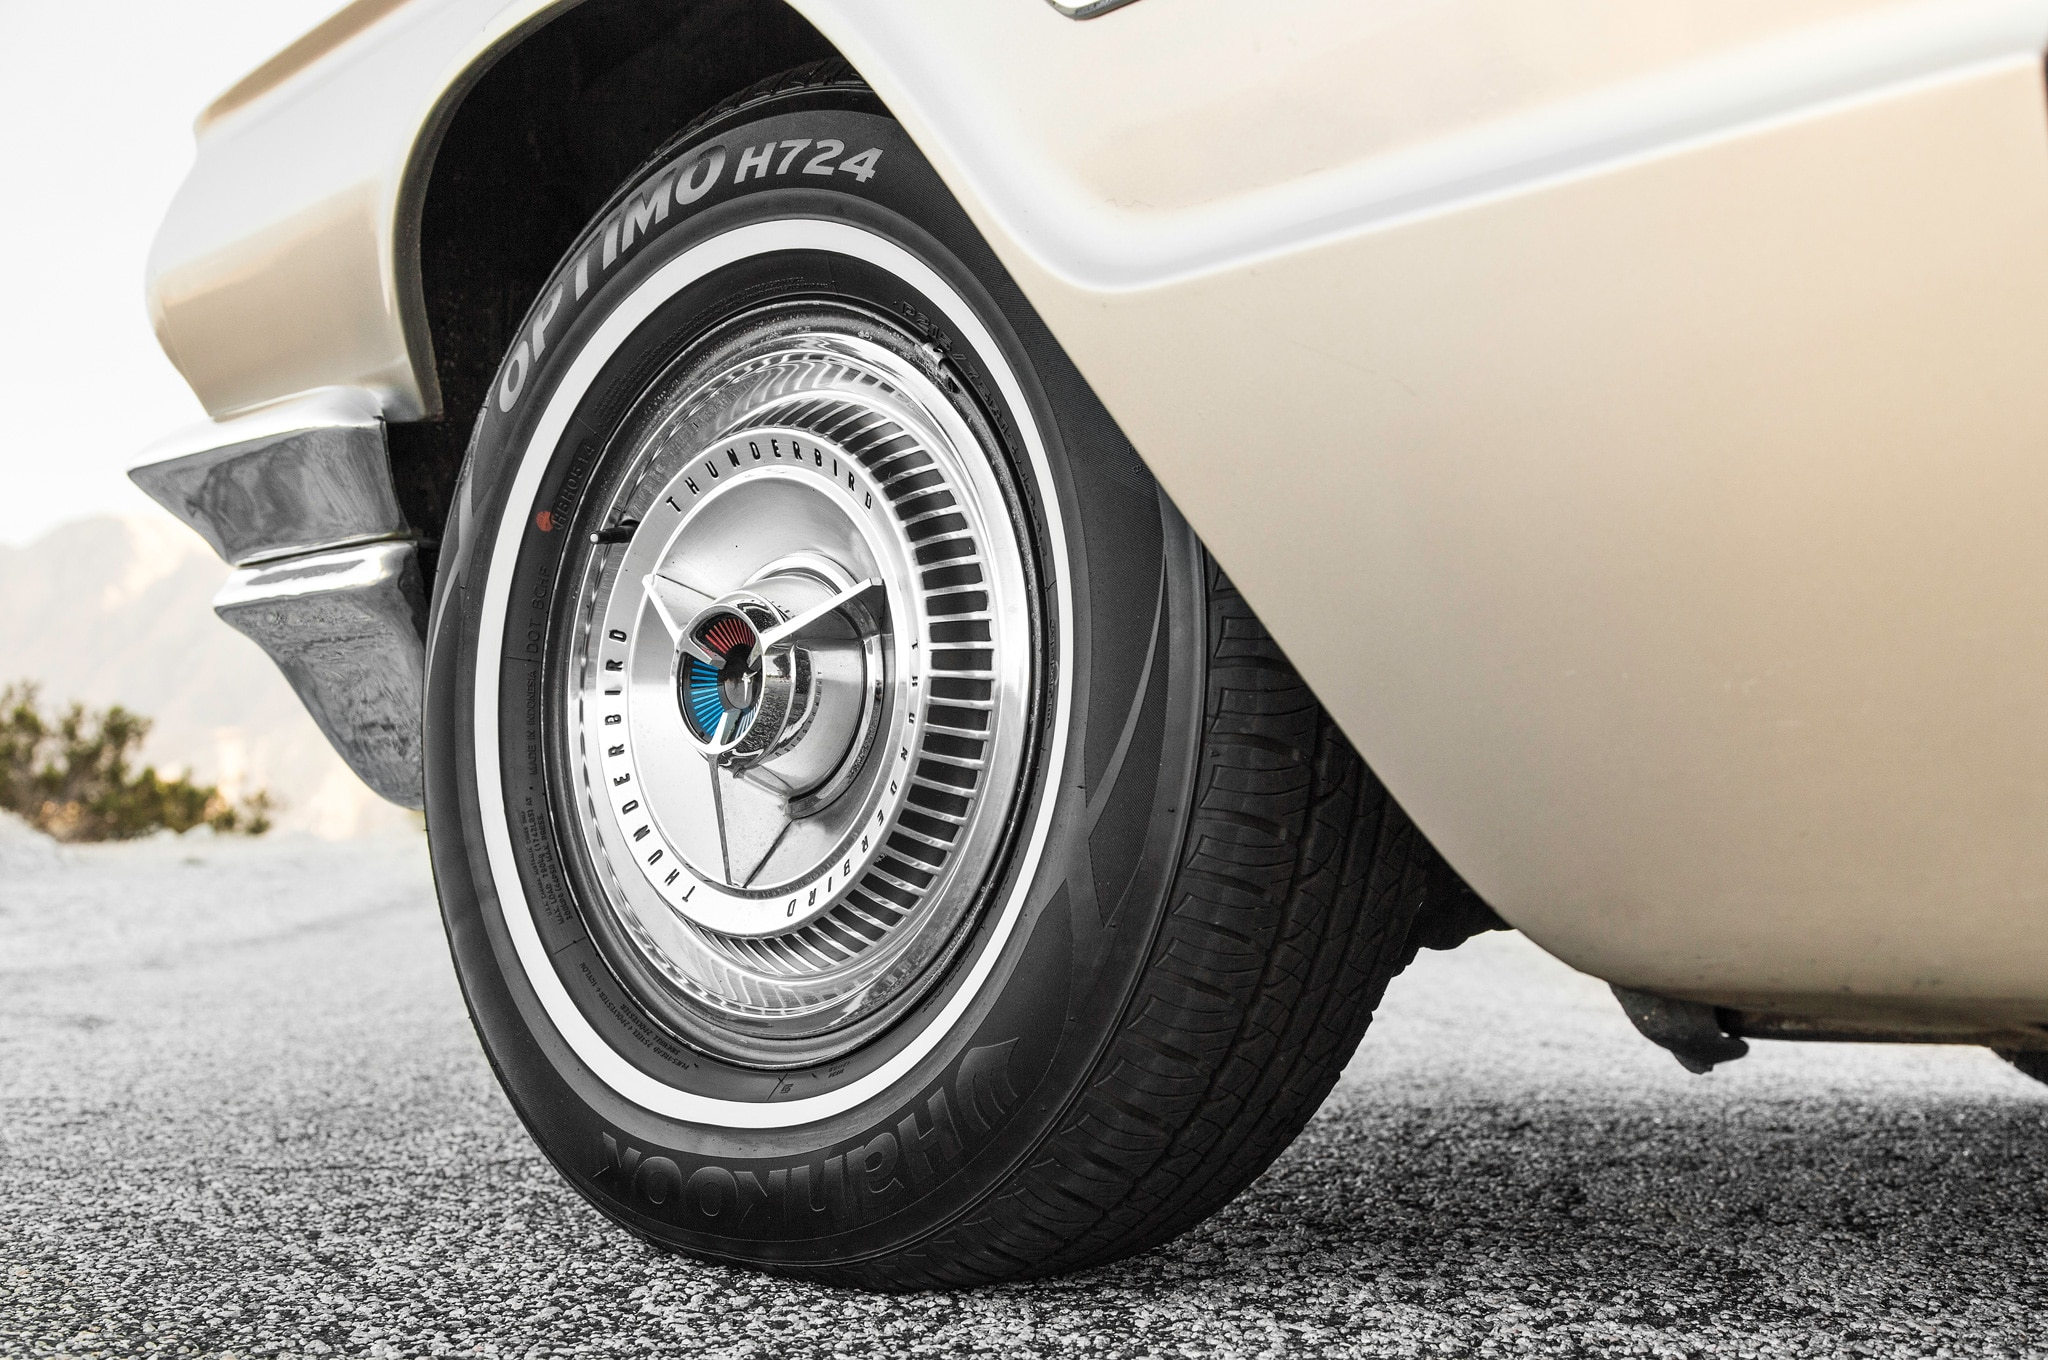 With 4,500 pounds of road-hugging weight under you, make sure you have the front-disc brakes that come with the 1965 and 1966 models.